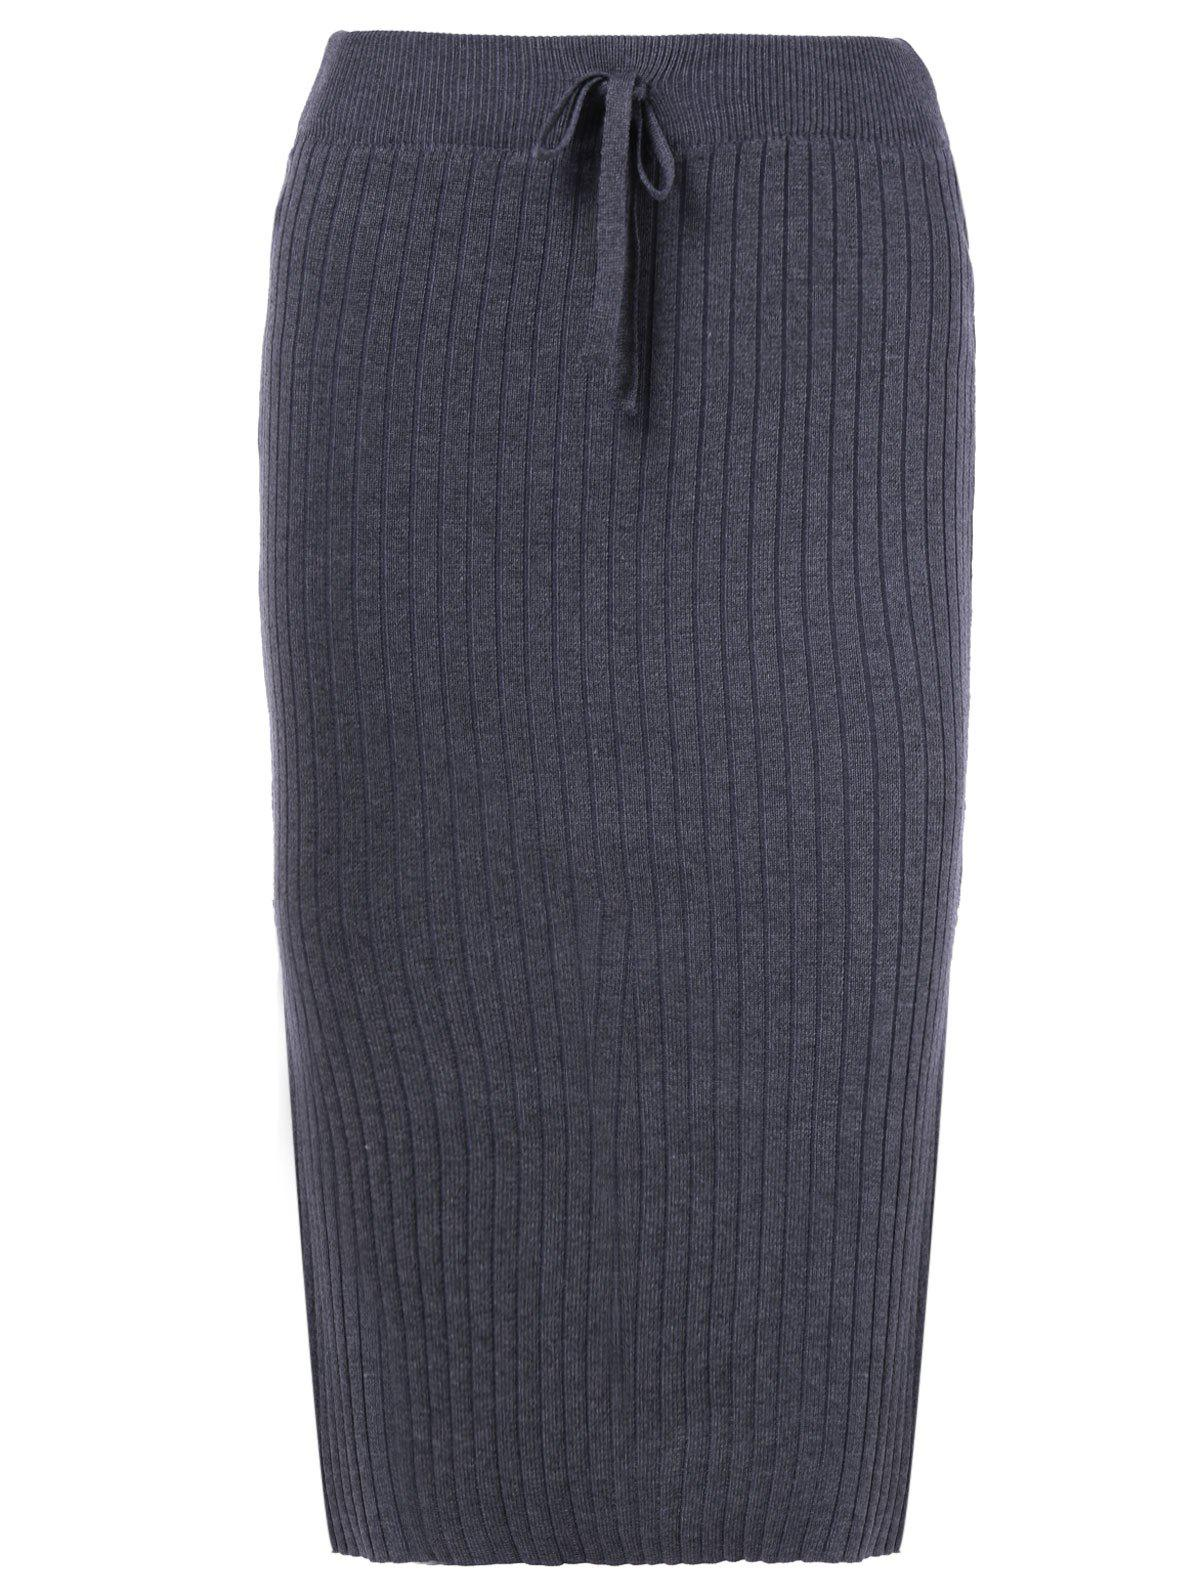 Stylish Elastic Waist Knited SkirtWomen<br><br><br>Size: ONE SIZE(FIT SIZE XS TO M)<br>Color: GRAY